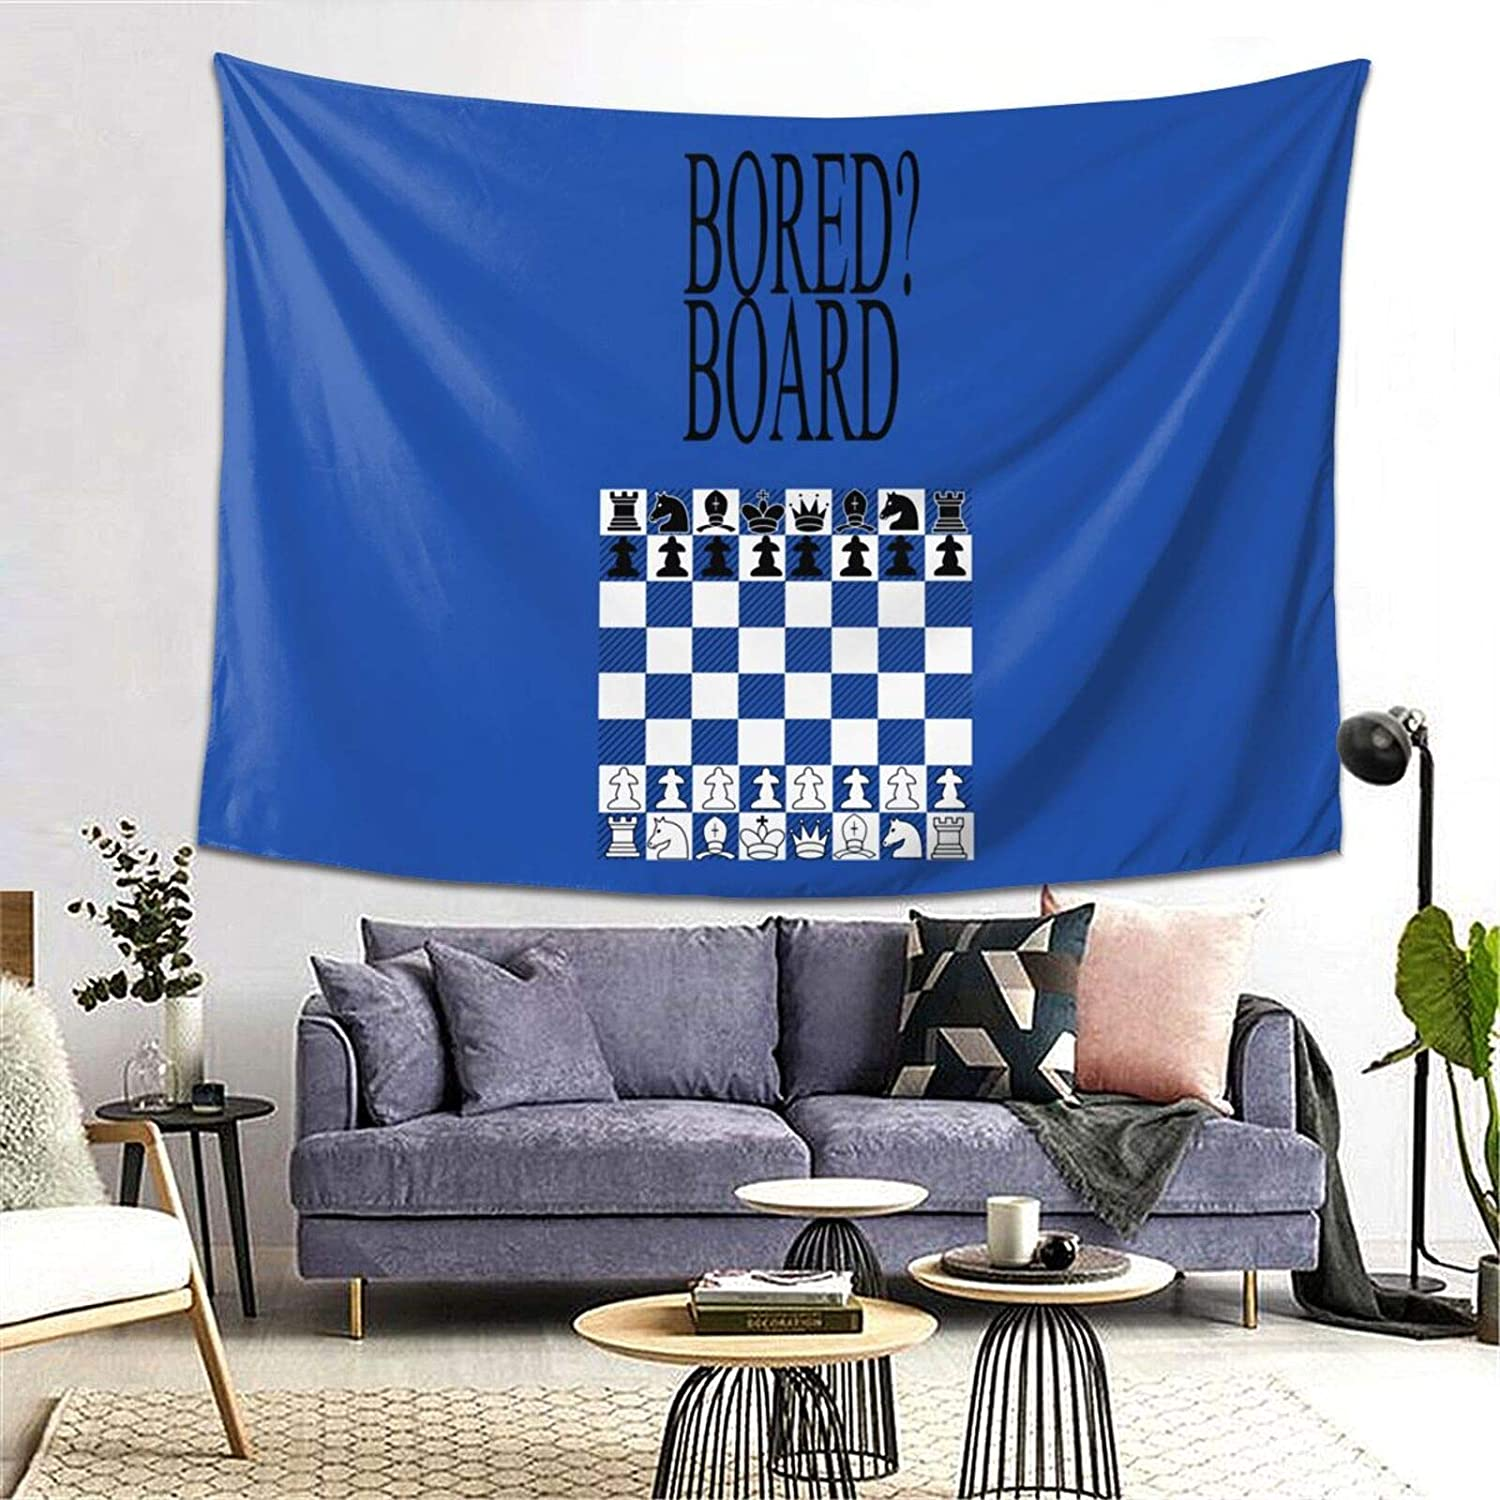 Chessboard 2 Pullover Hoodie Wall Tapestry Apestry Album 3D Wall Hanging Art Home Decor Wave Tapestries